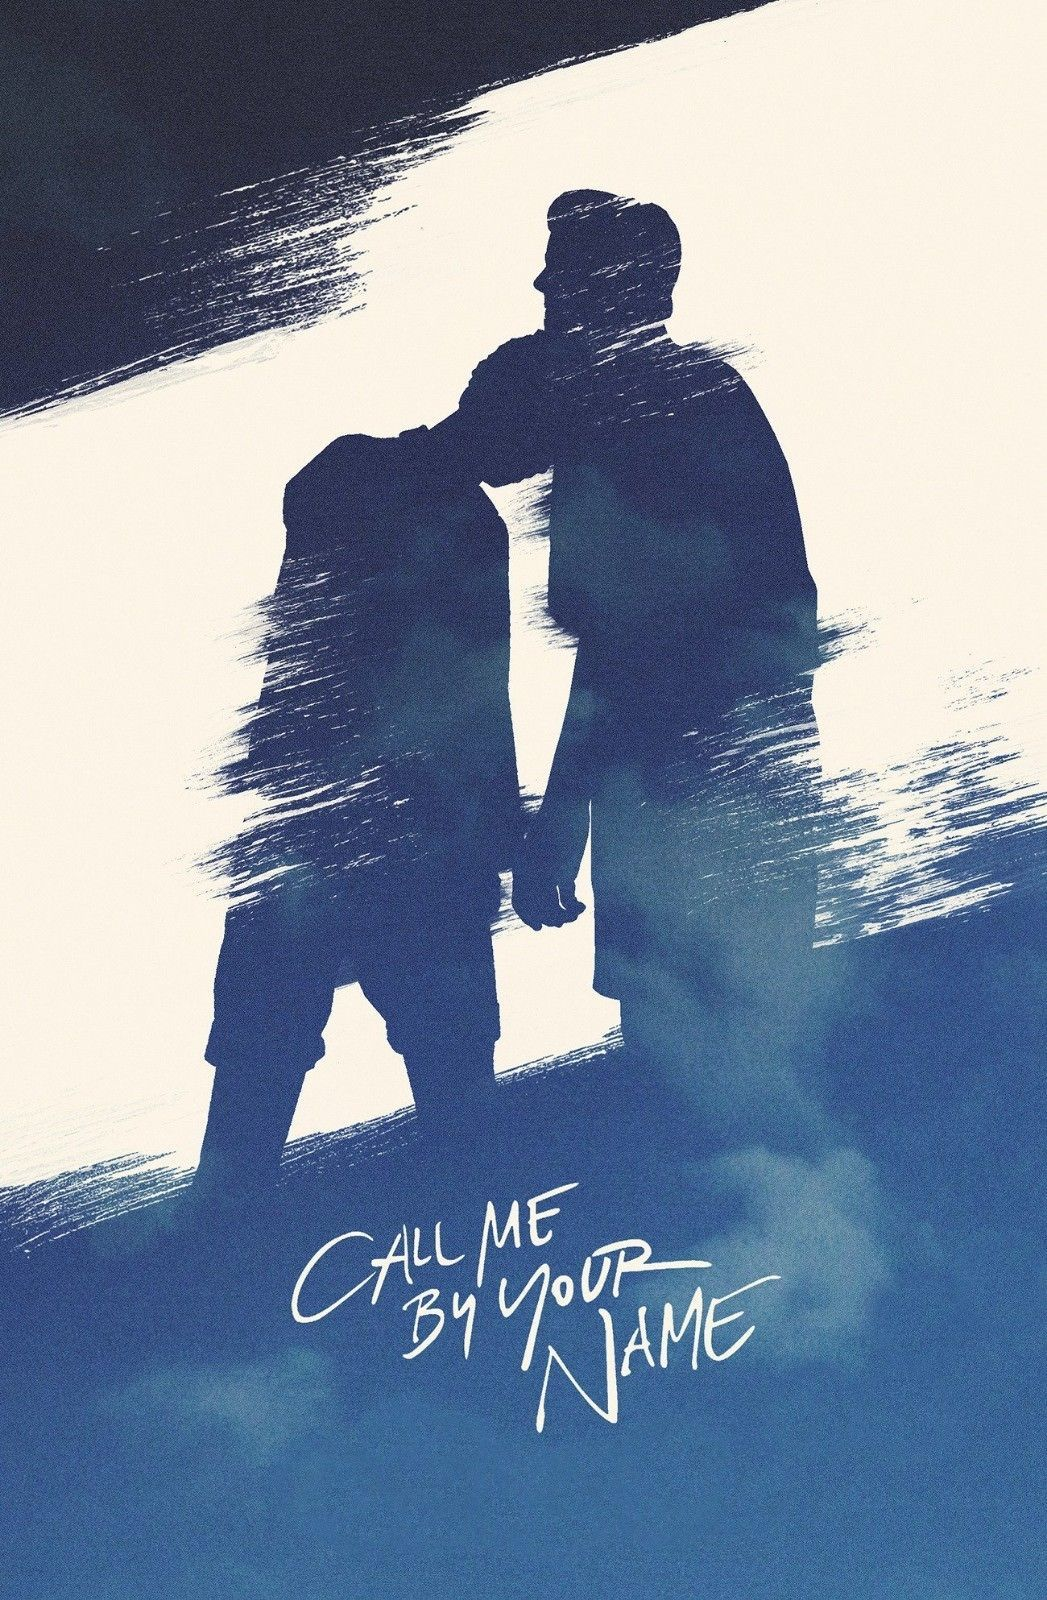 $11.99 - Call Me By Your Name Movie Poster Luca Guadagnino Film ...